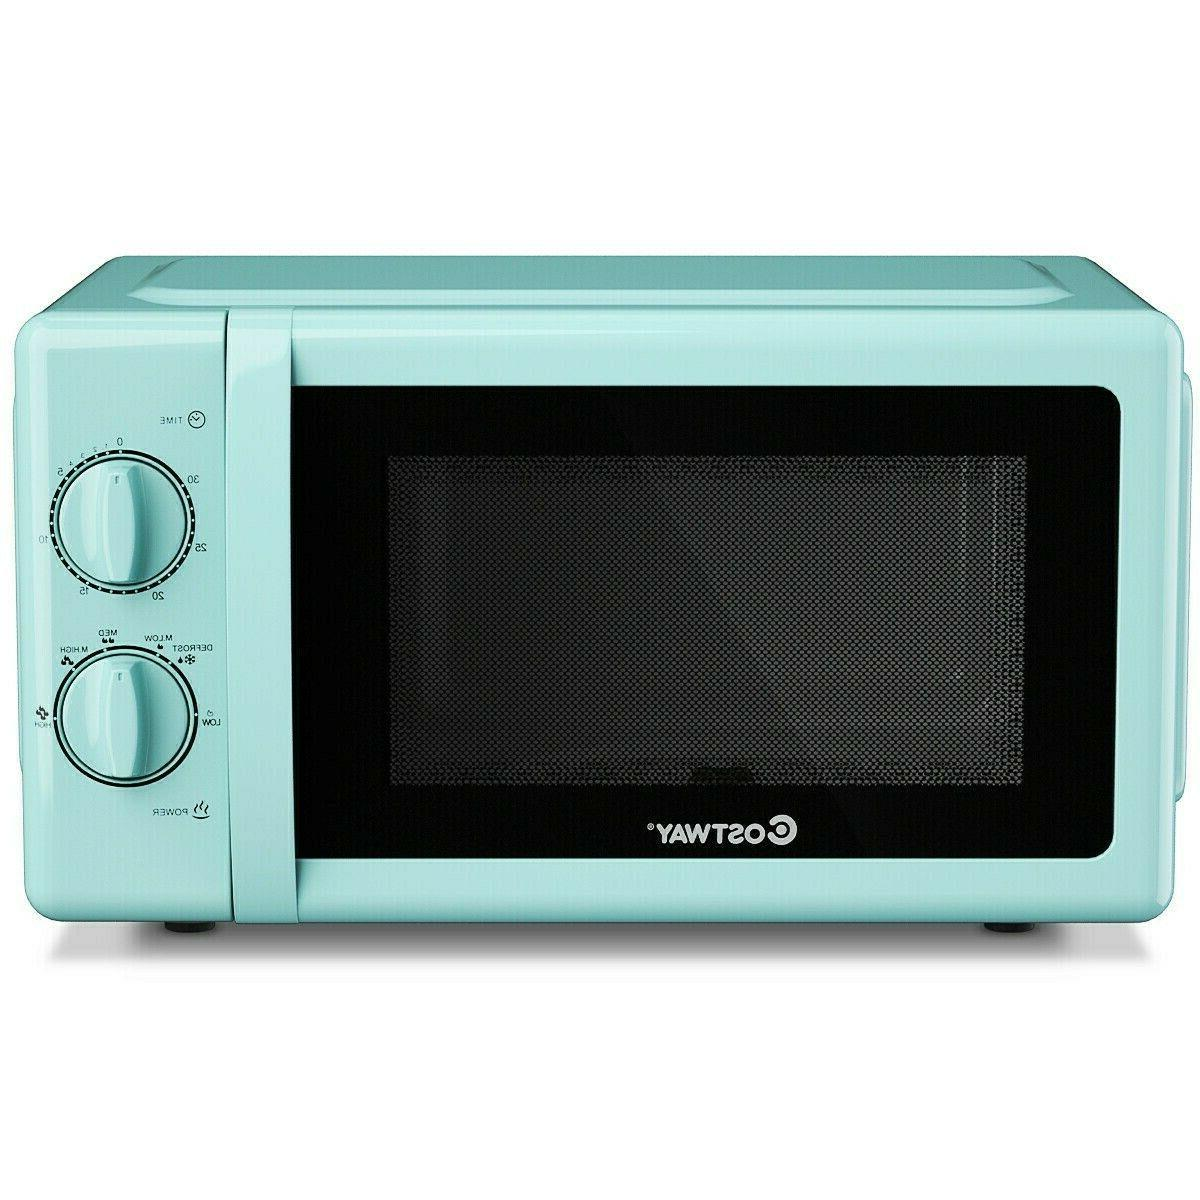 retro compact microwave oven teal color kitchen